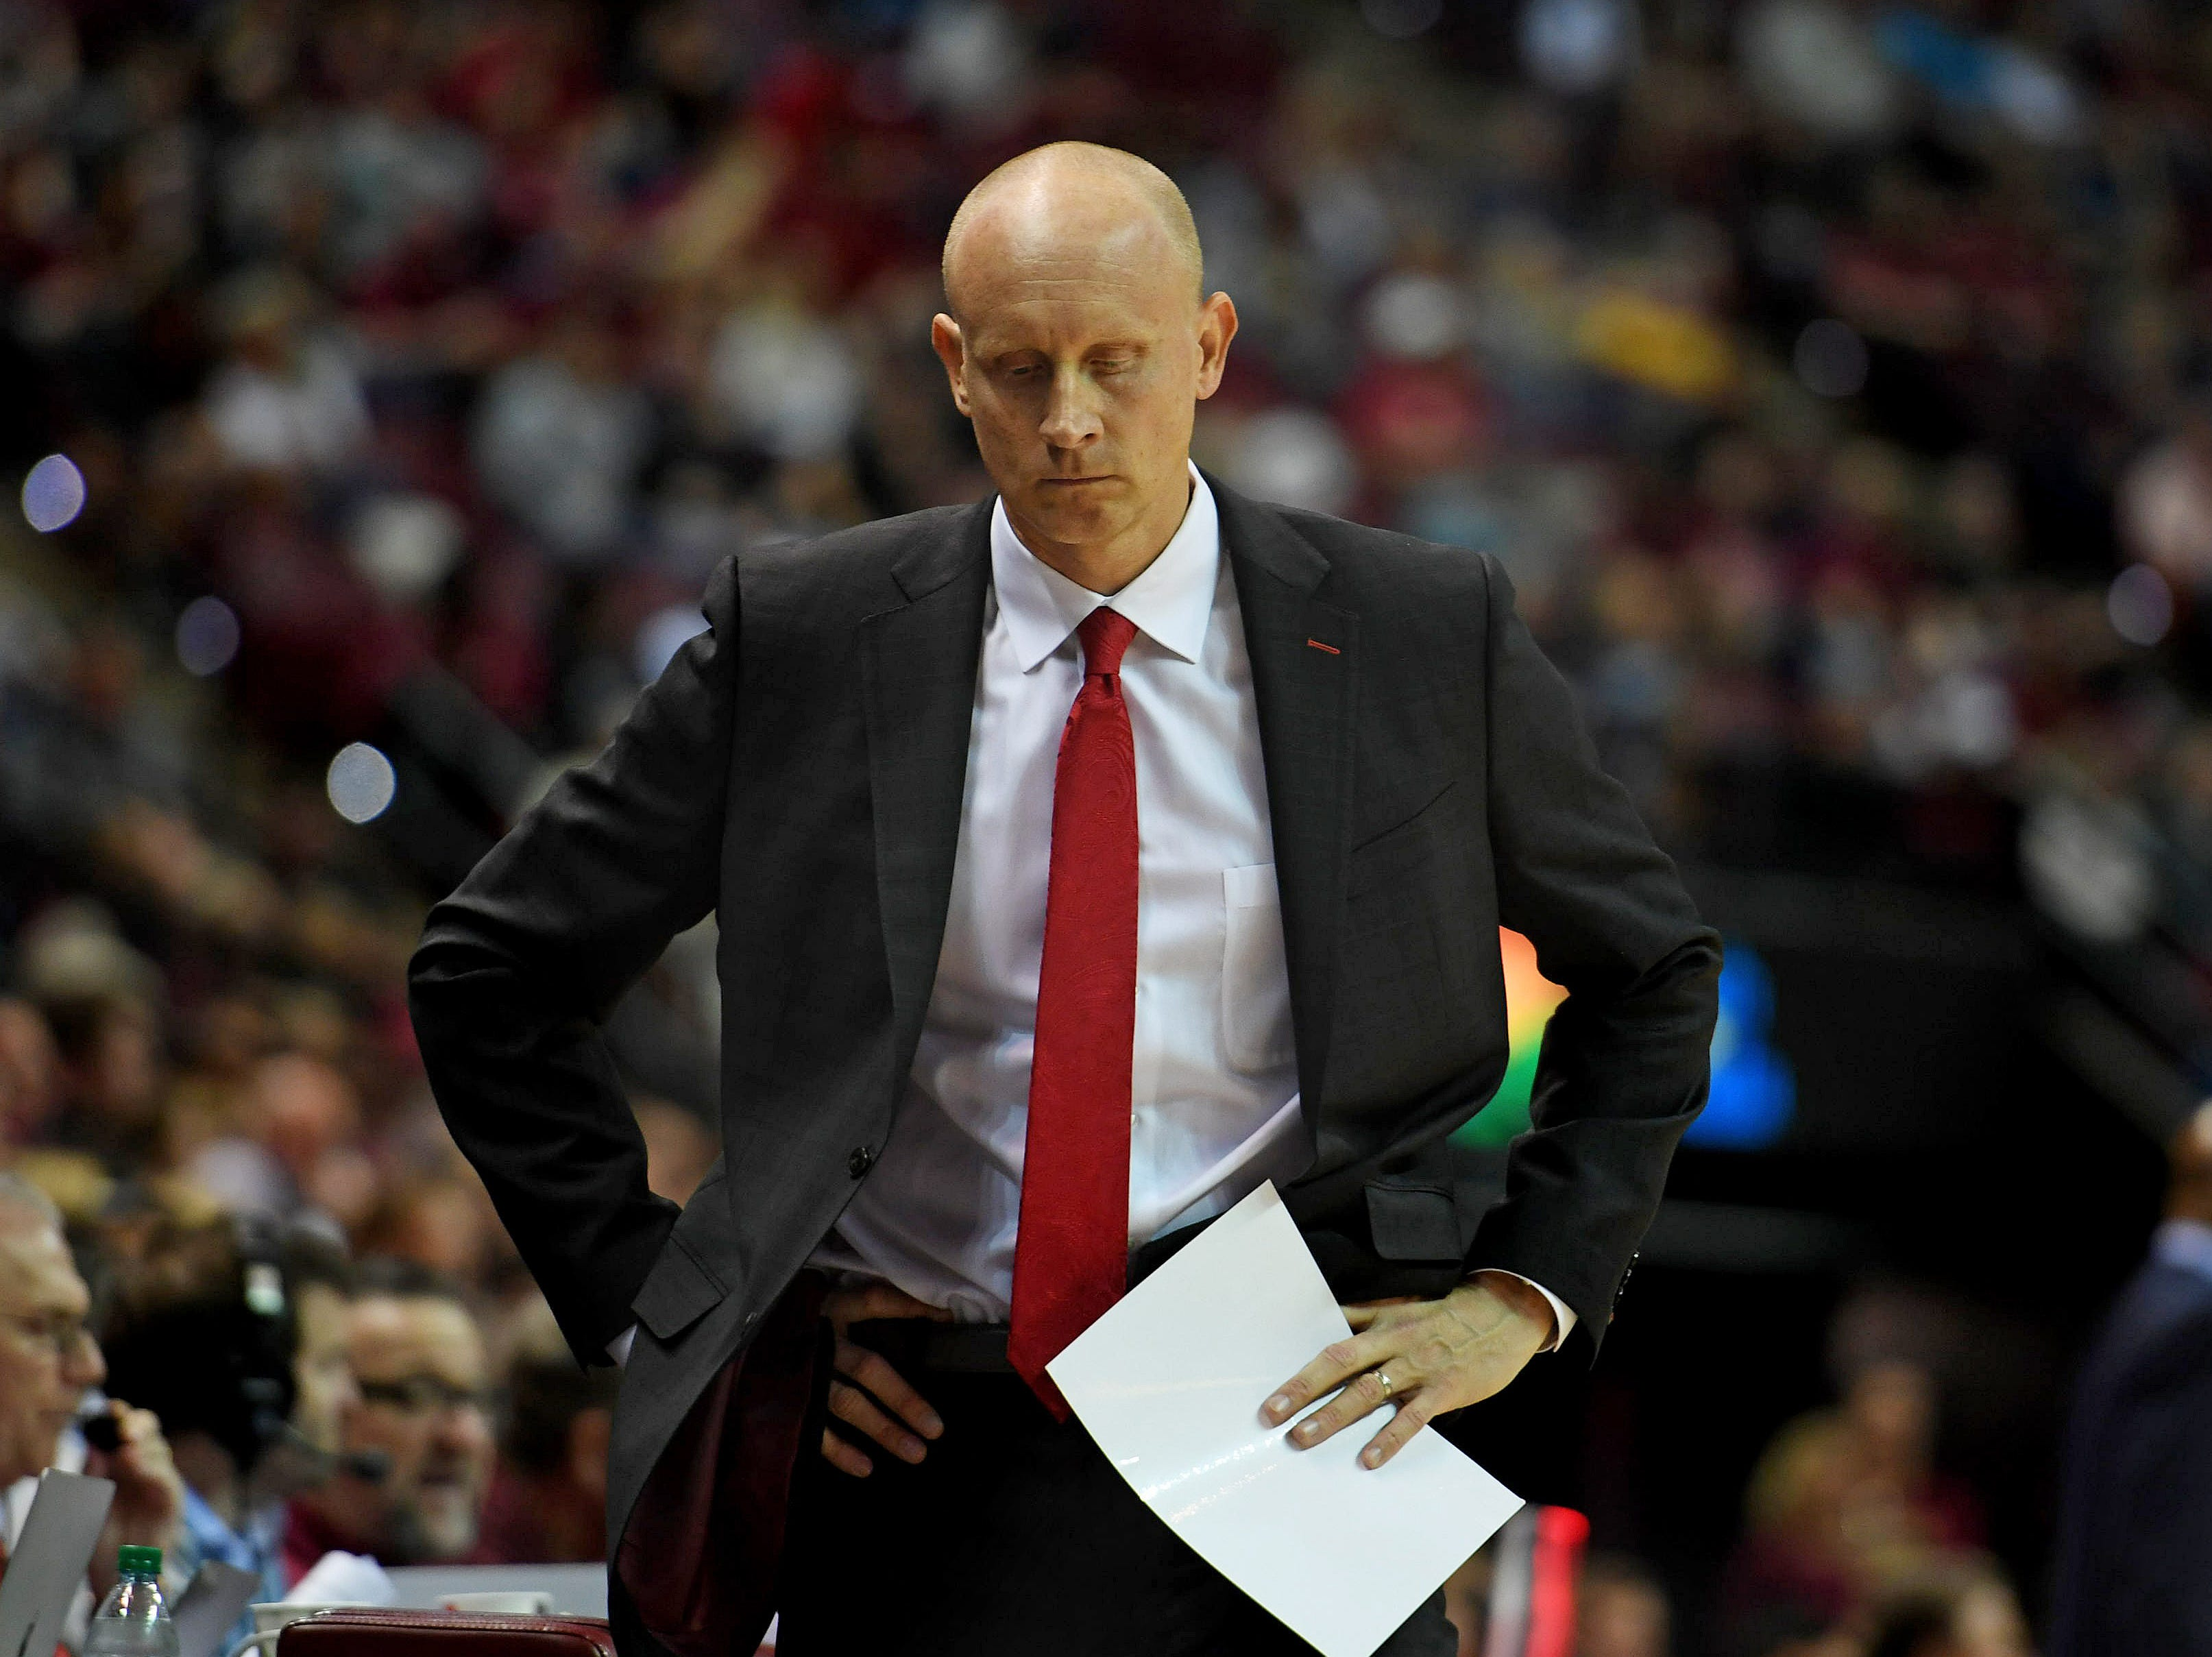 Feb 9, 2019; Tallahassee, FL, USA; Louisville Cardinals head coach Chris Mack reacts during the second half against the Florida State Seminoles at Donald L. Tucker Center. Mandatory Credit: Melina Myers-USA TODAY Sports